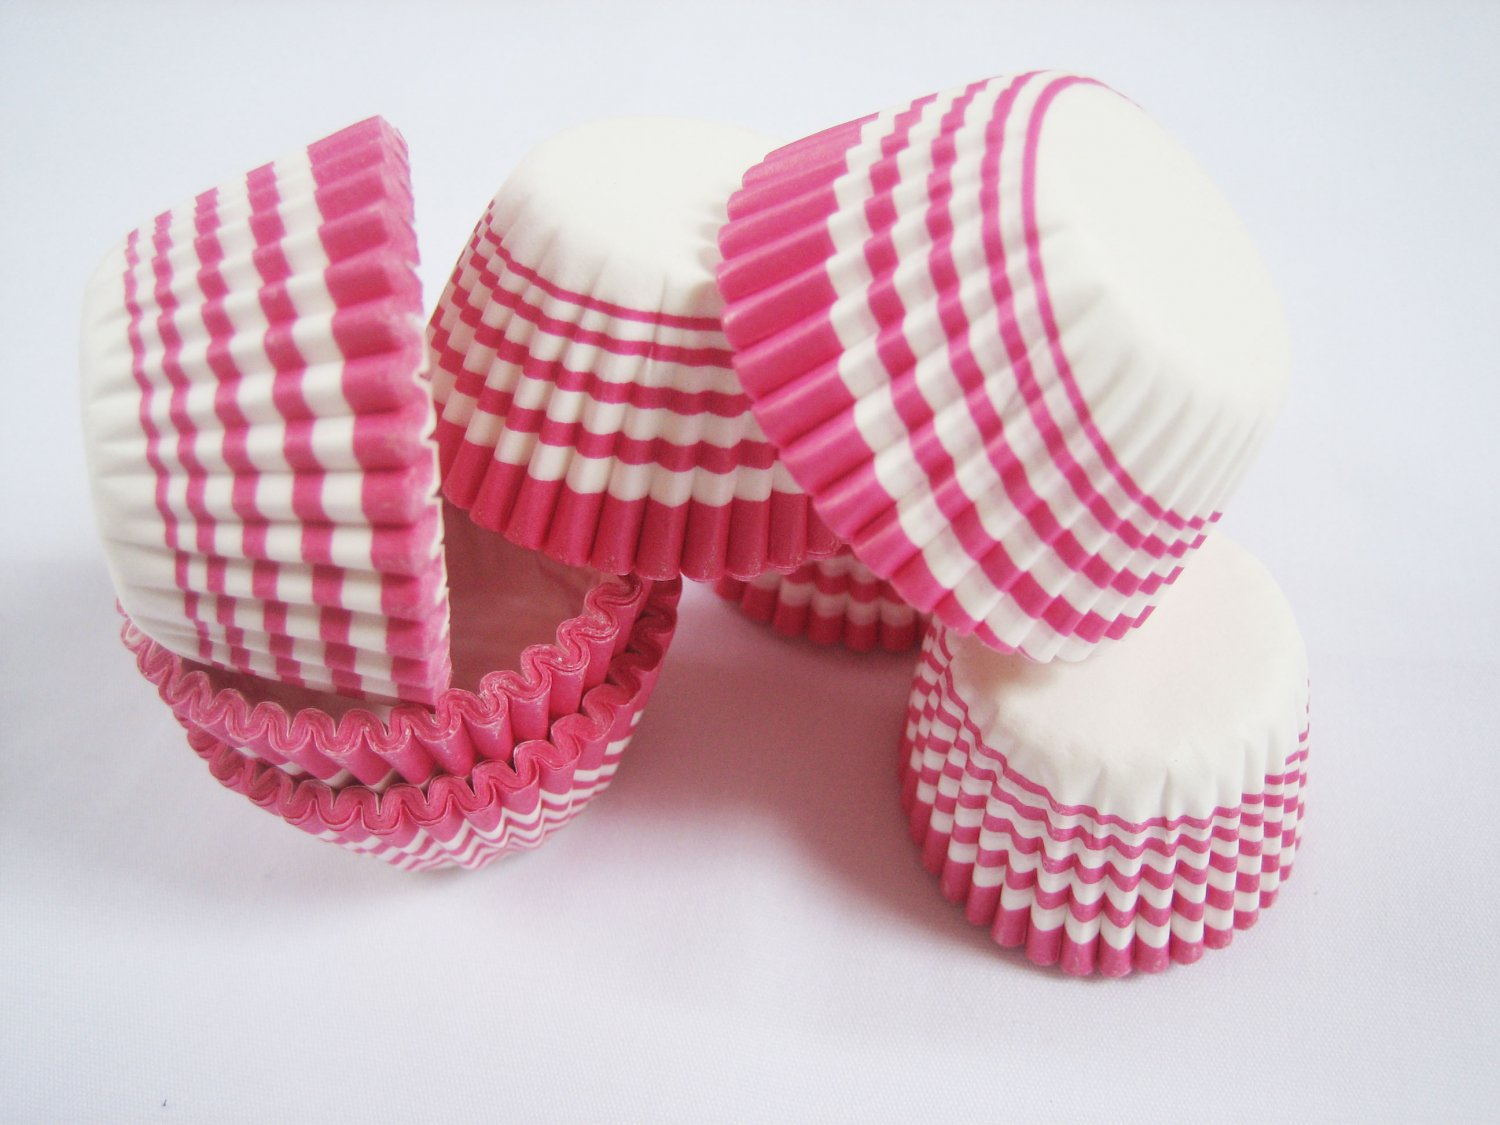 1000pcs Pink Swirl Line Mini Paper Cake Cup for Candy/Cookies/Petite/Cake 6cm